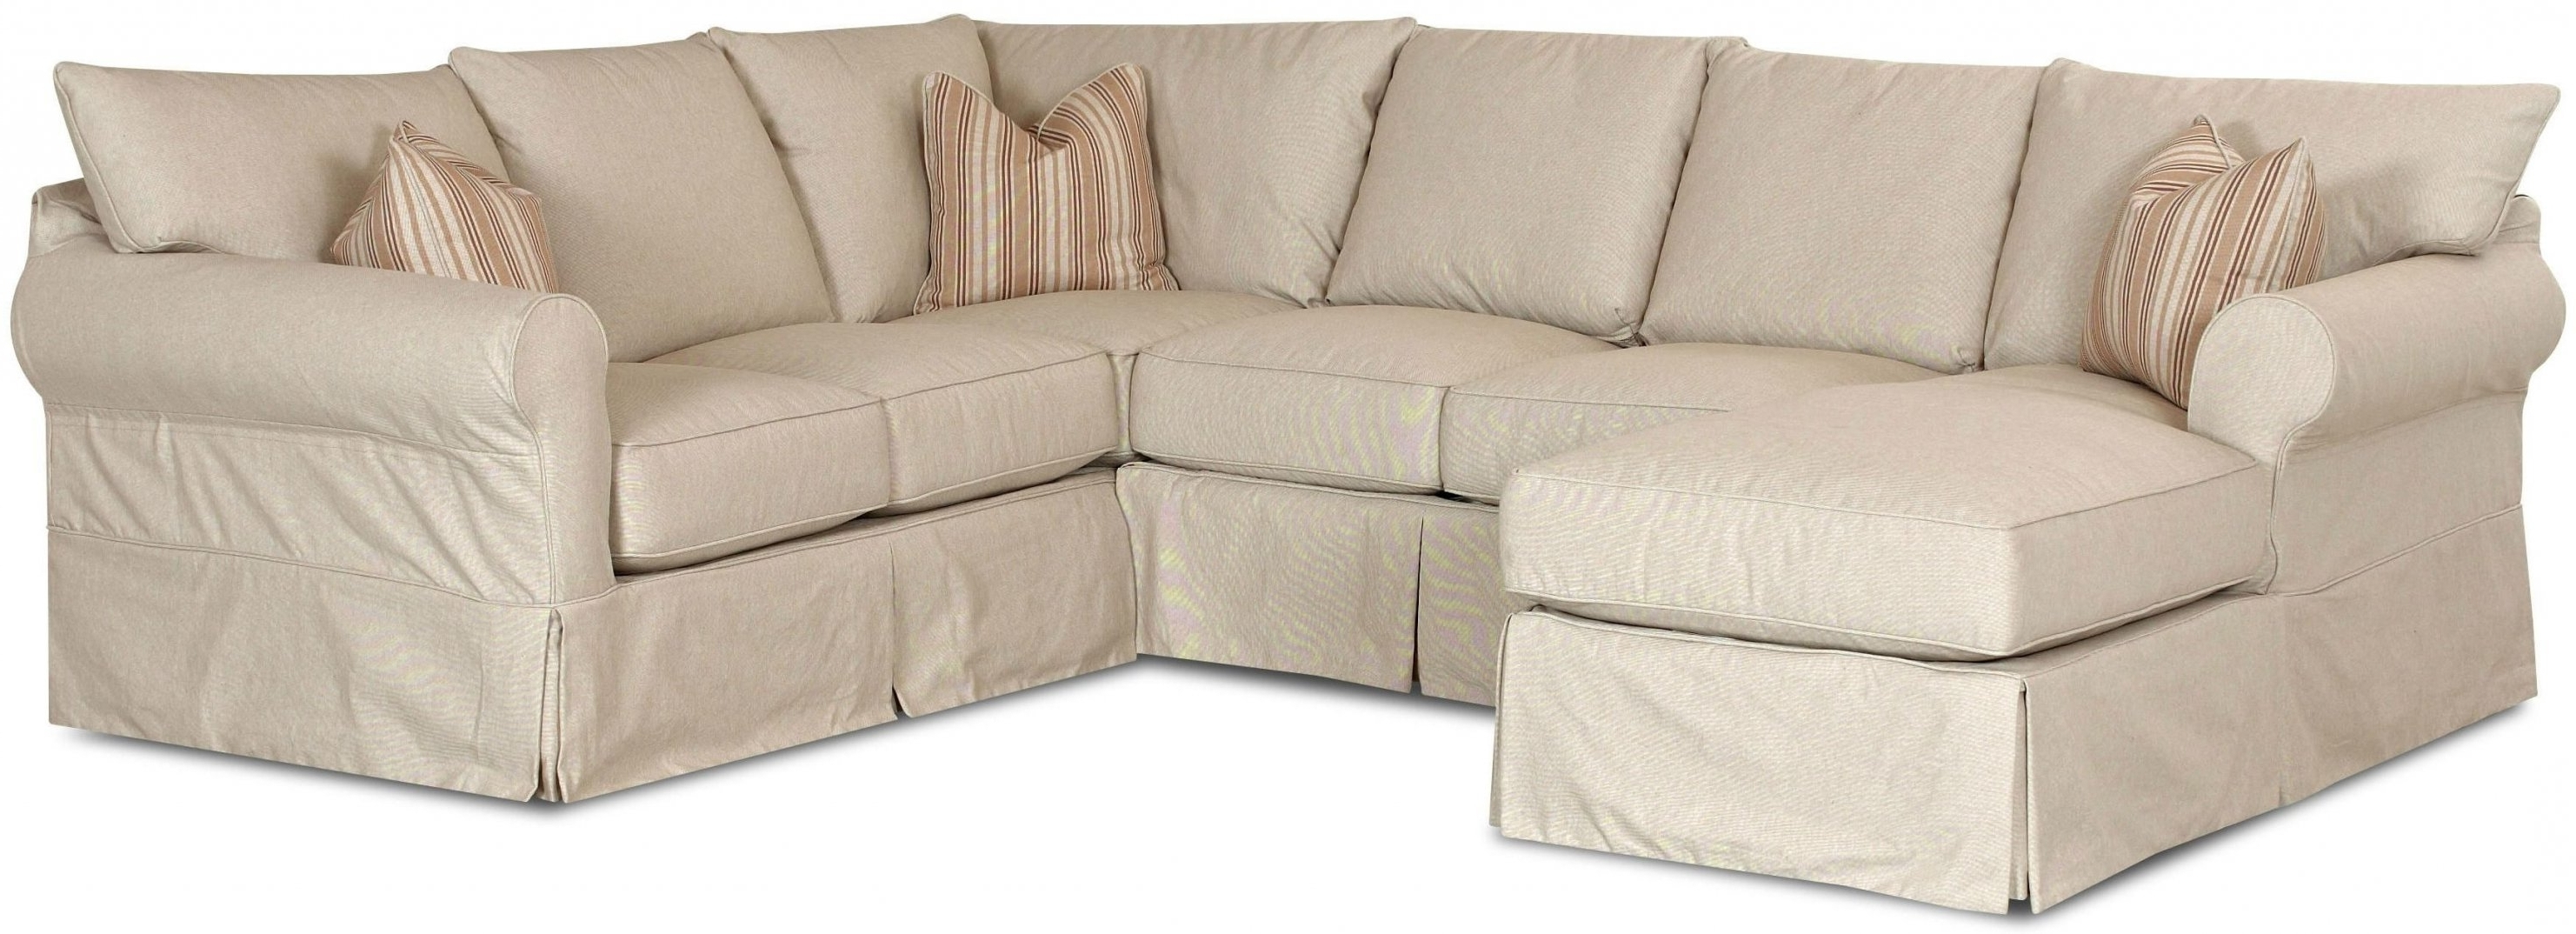 Current Chaise Couch Covers Intended For Sectional Sofa Covers Http Ml2R Com Pinterest Chaise Lounge (View 8 of 15)